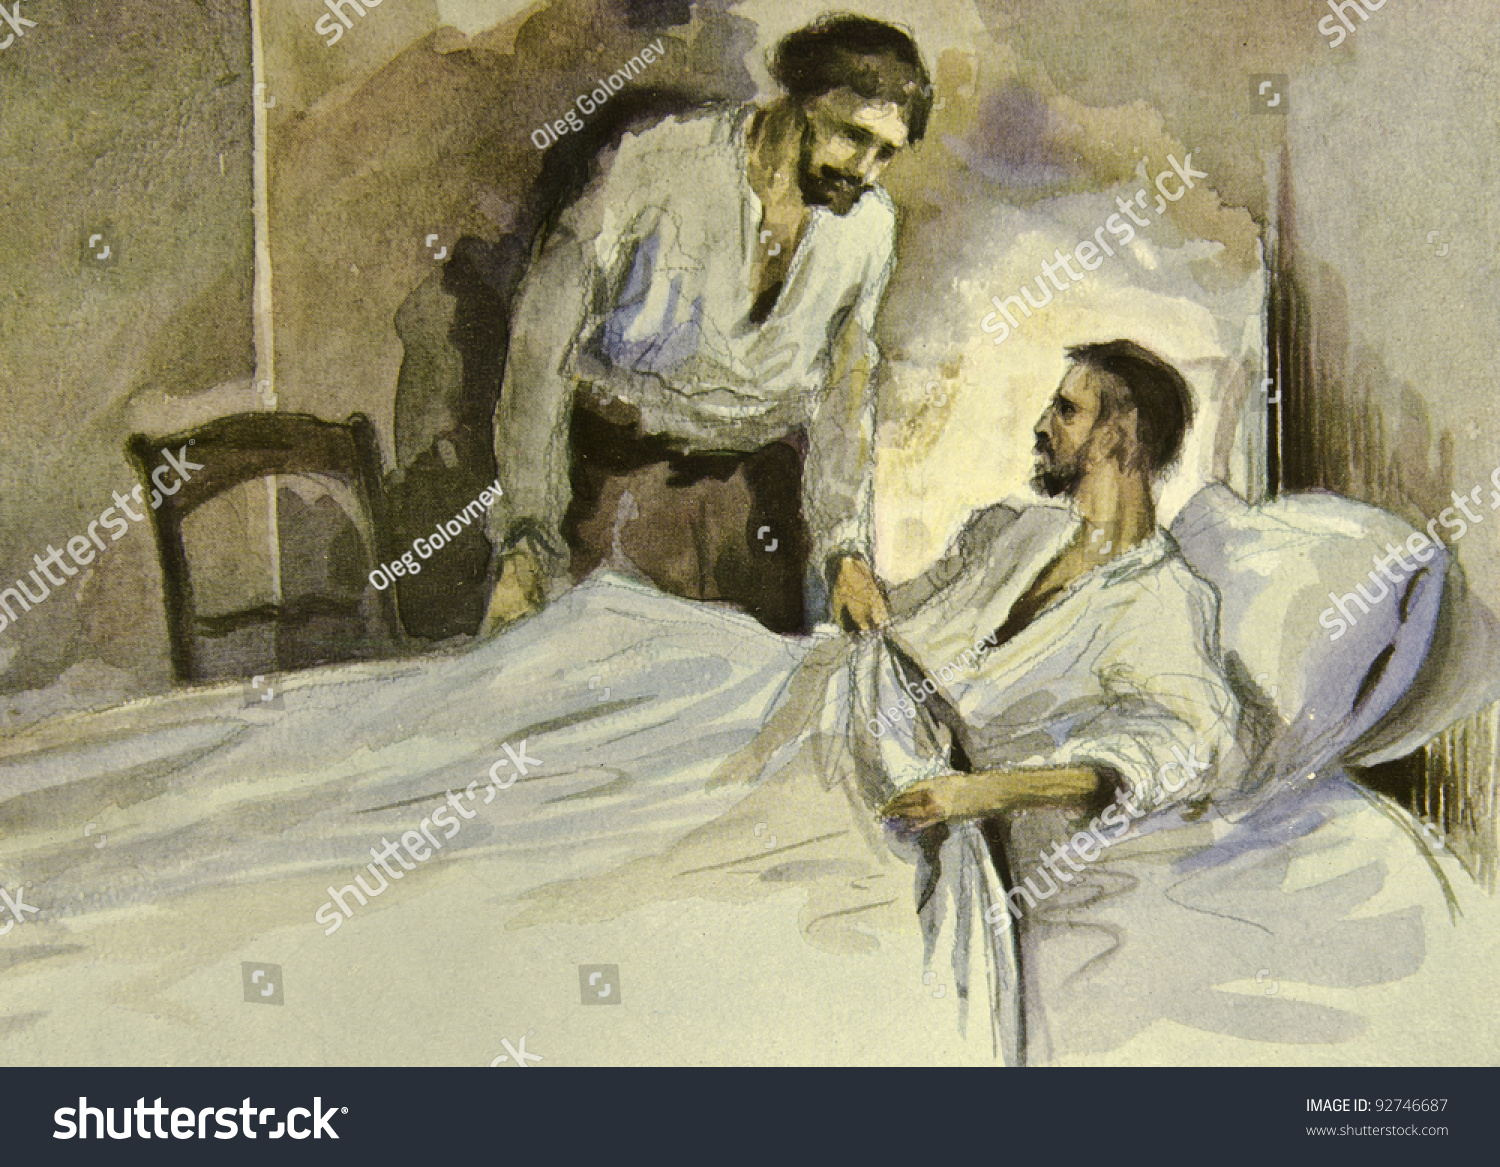 Man Bedside His Sick Friend Illustration Stock Photo 92746687 ...